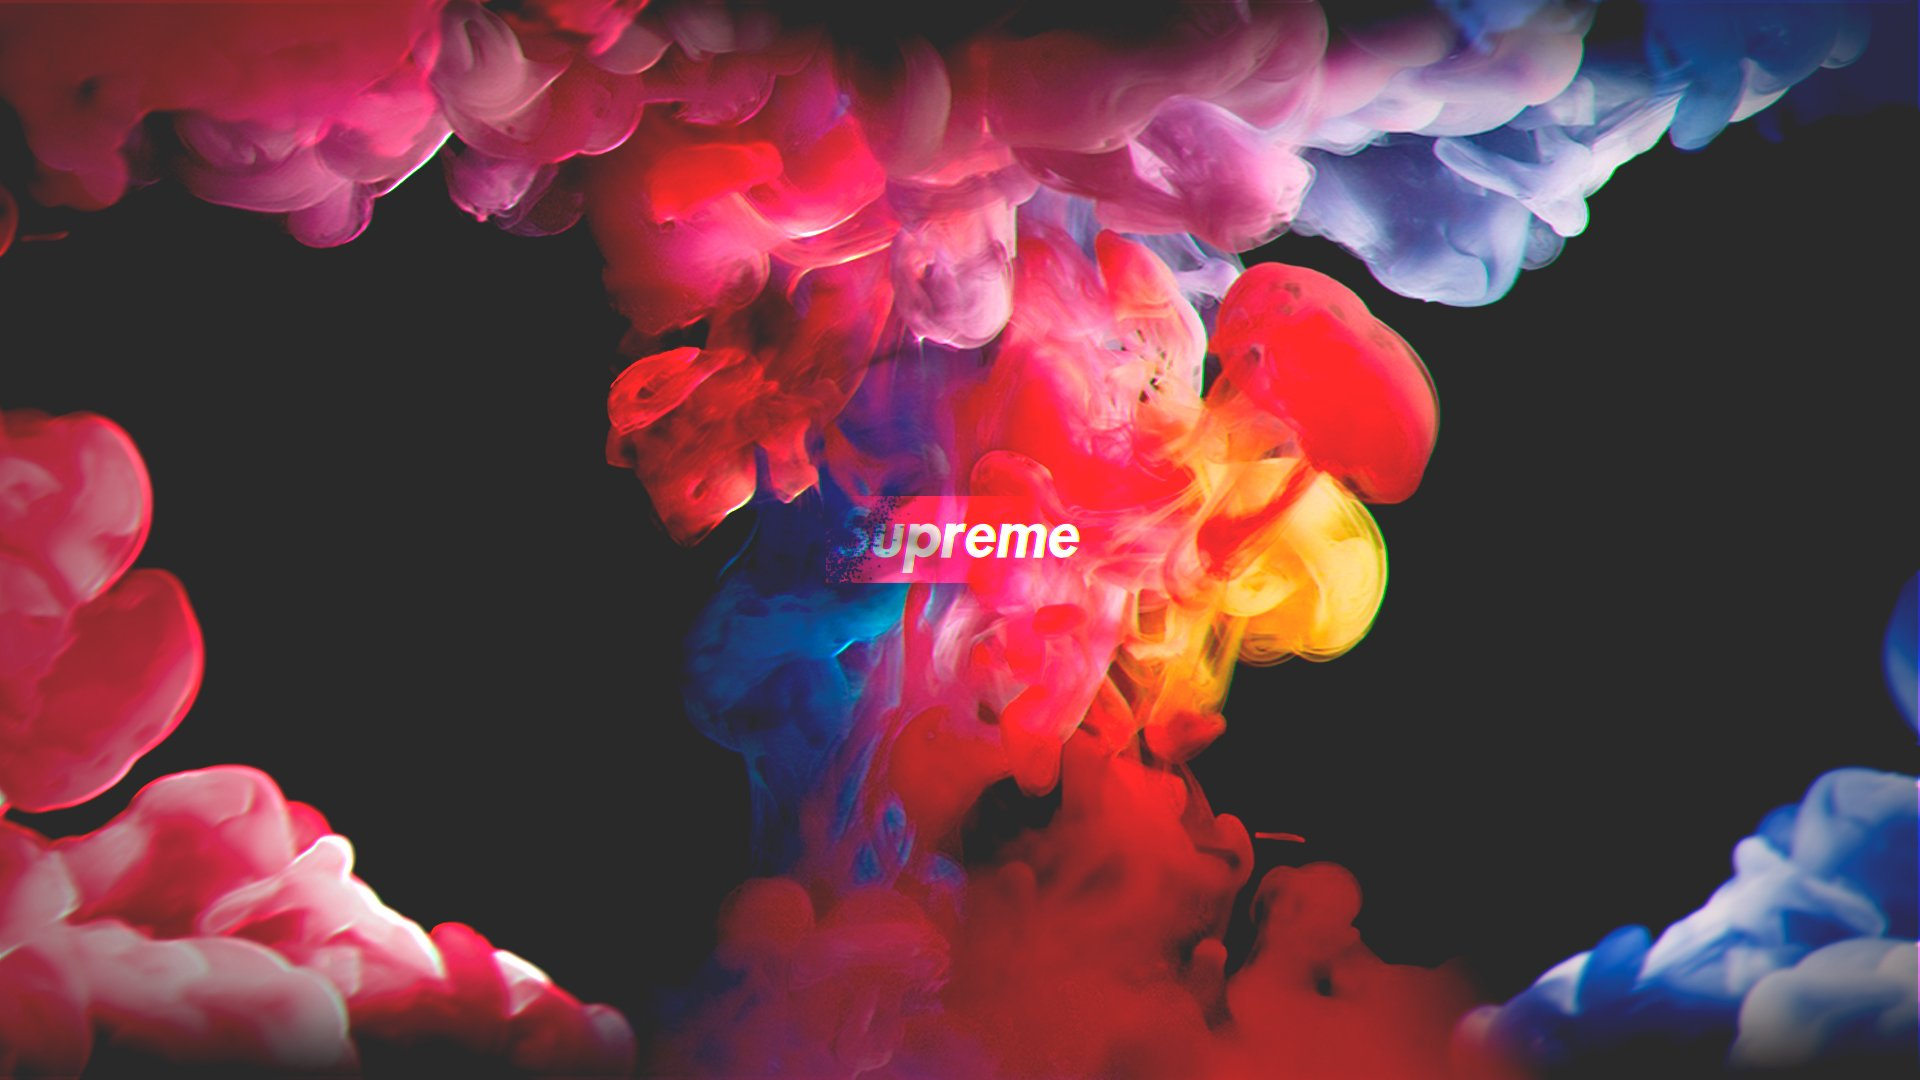 Supreme Wallpaper Hd Pc